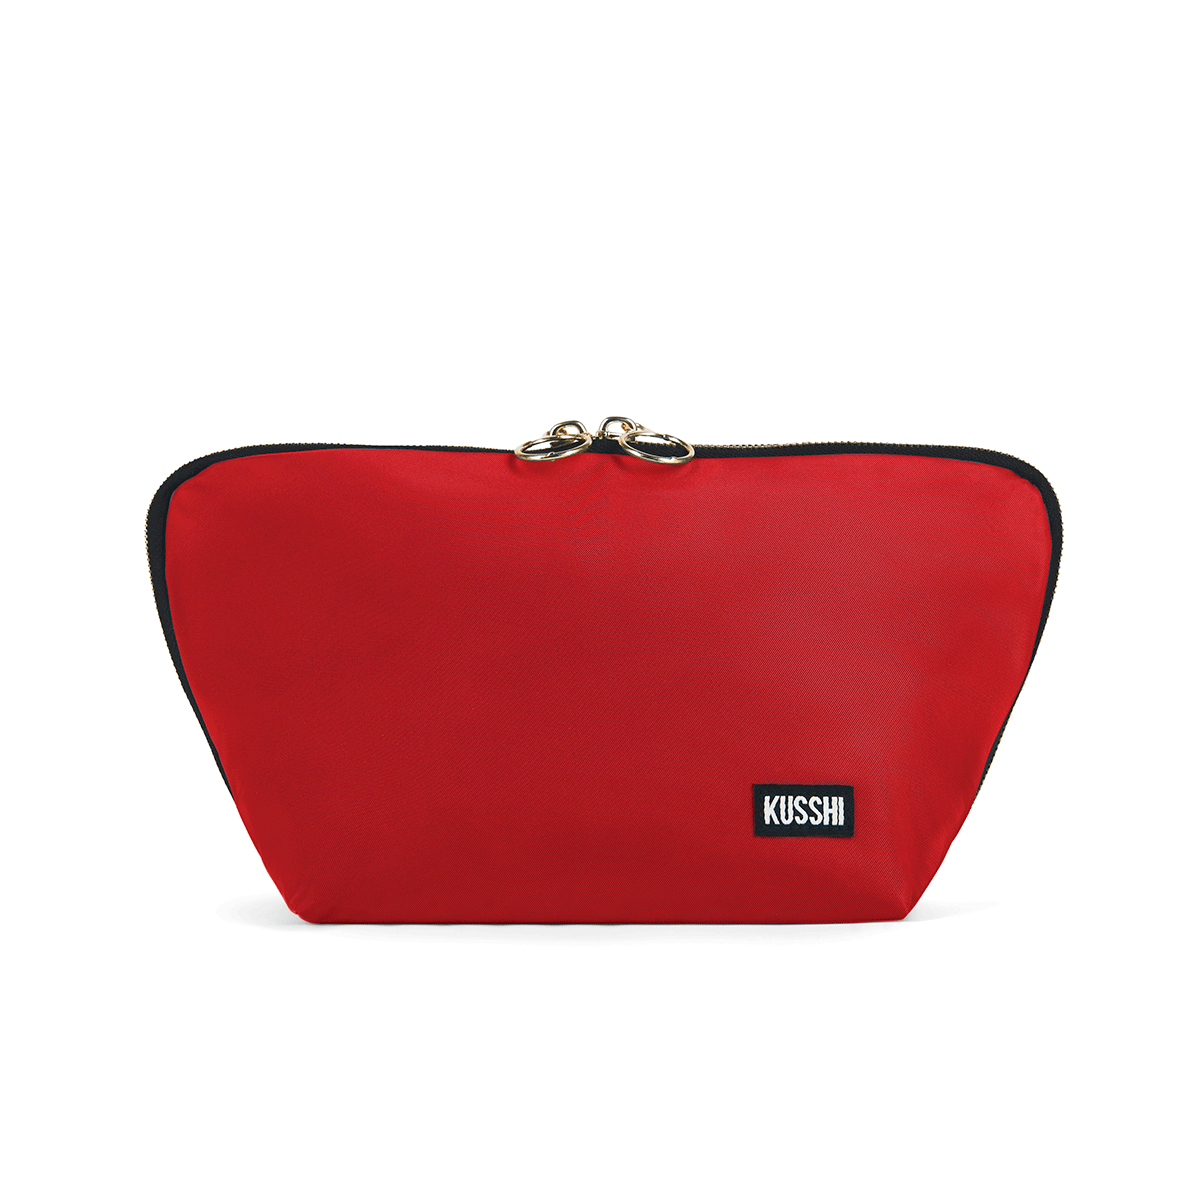 color: Signature+Candy Apple Red Fabric with Leopard Interior+None; alt: Signature Medium Makeup Bag | KUSSHI